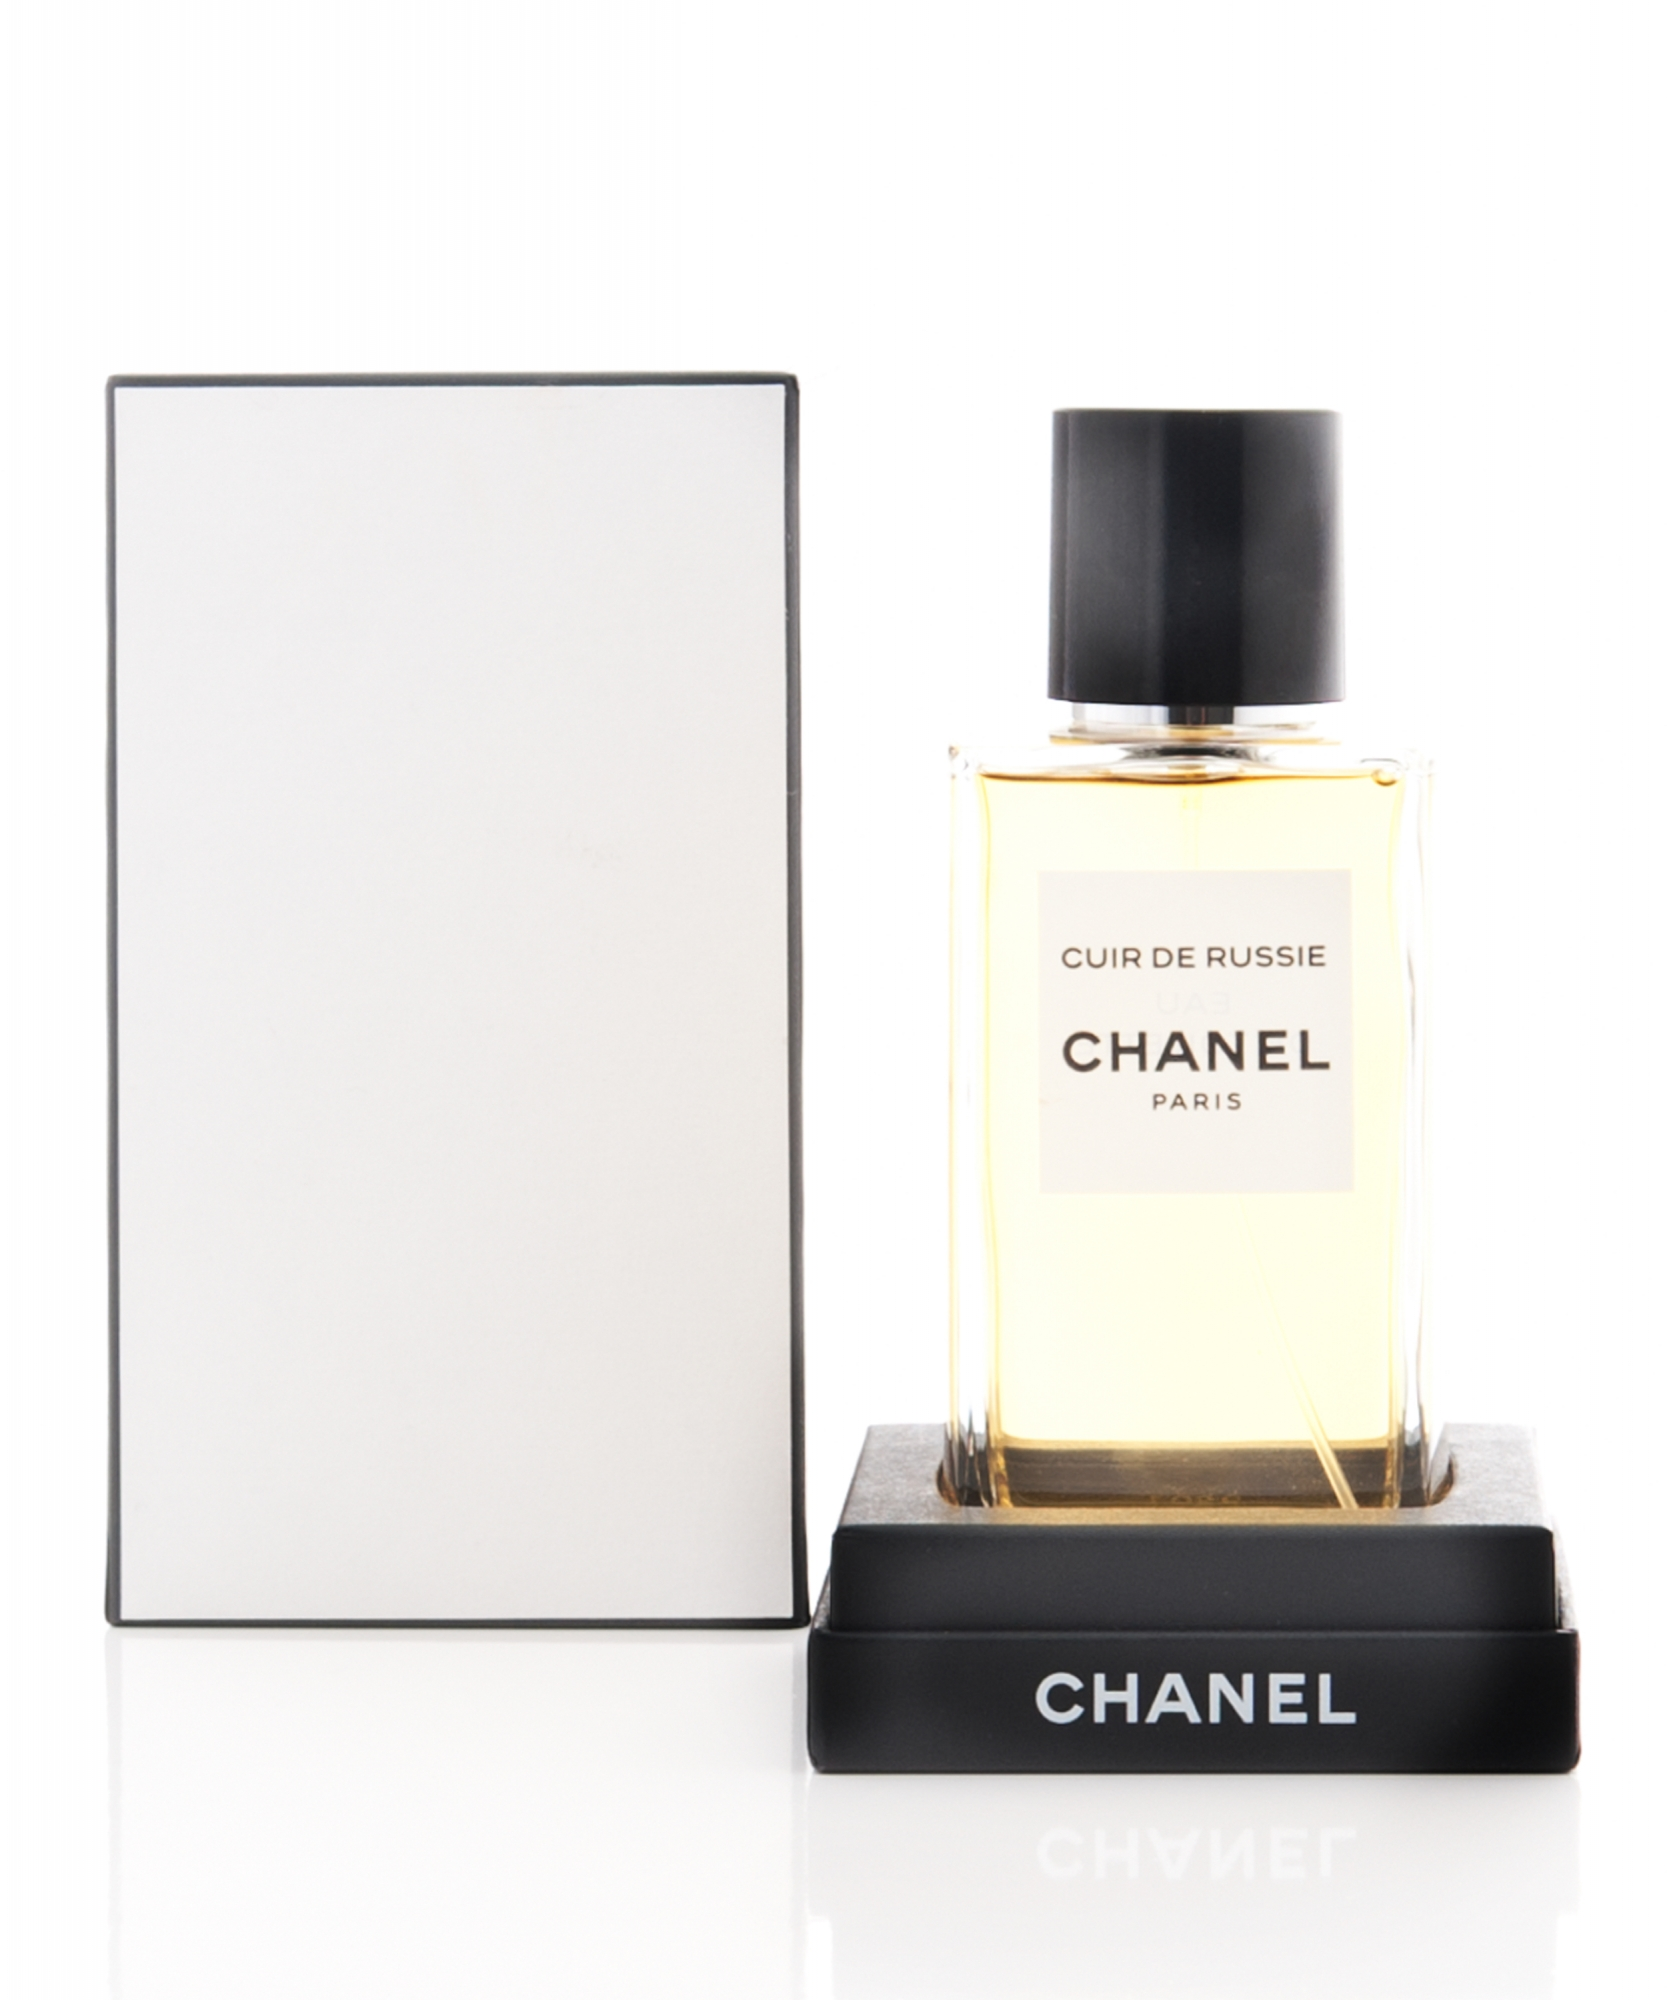 chanel cuir de russie eau de toilette la doyenne. Black Bedroom Furniture Sets. Home Design Ideas